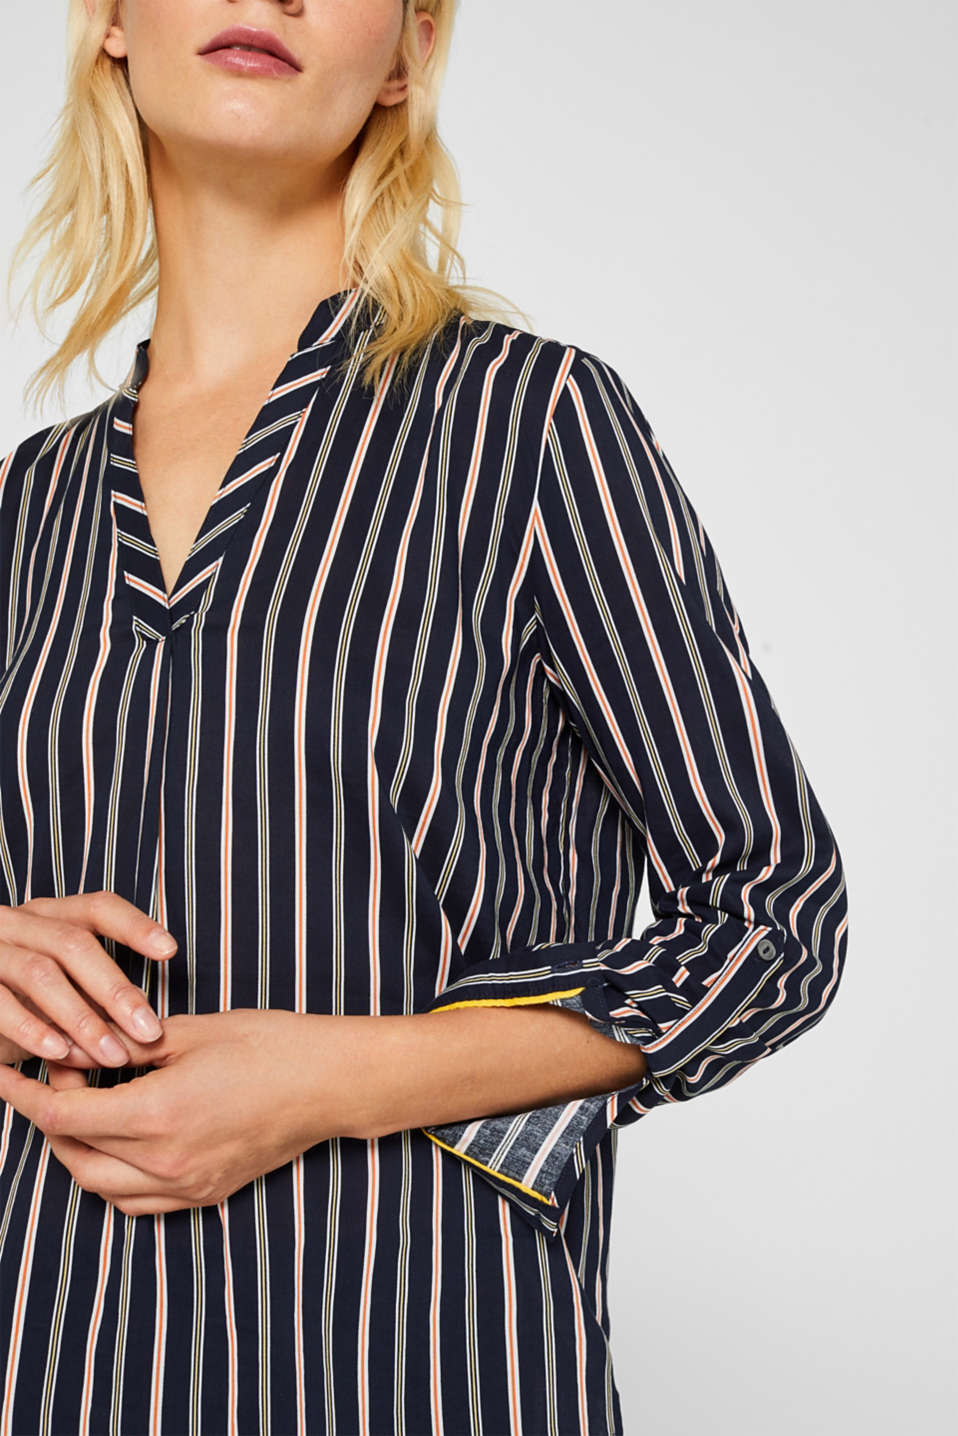 Slip-on blouse with stripes, NAVY, detail image number 2